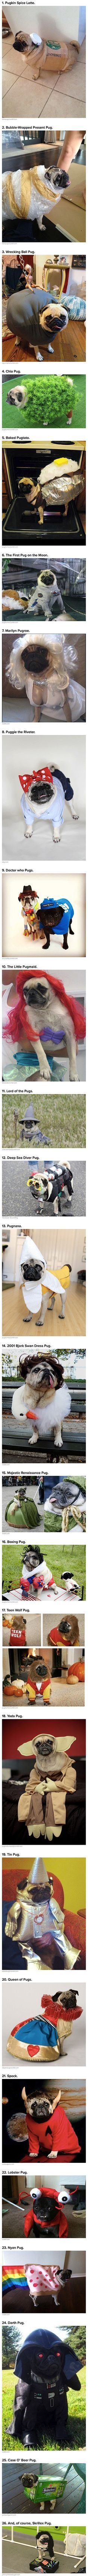 . laughed way to hard at these: Dog Costumes Funny, Poor Pug, Giggle, Pugs In Costume, Pug Costumes, Pug Life, Funny Dog Halloween Costumes, Animal